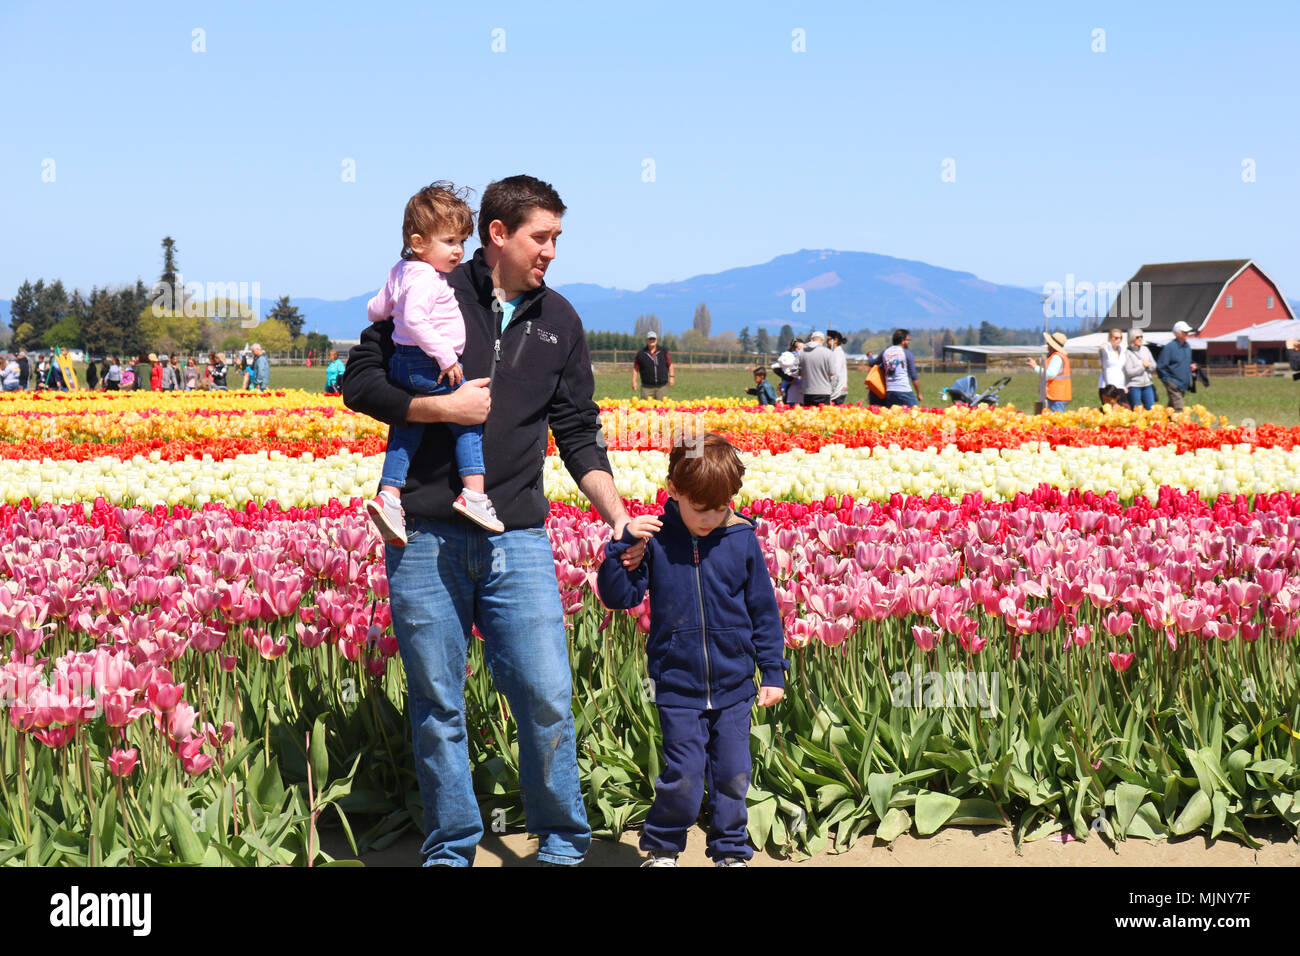 A father with his two children posing for pictures at the Skagit Valley Tulip Festival in Mount Vernon, Washington, USA.  The tulip fields are at Tuli - Stock Image